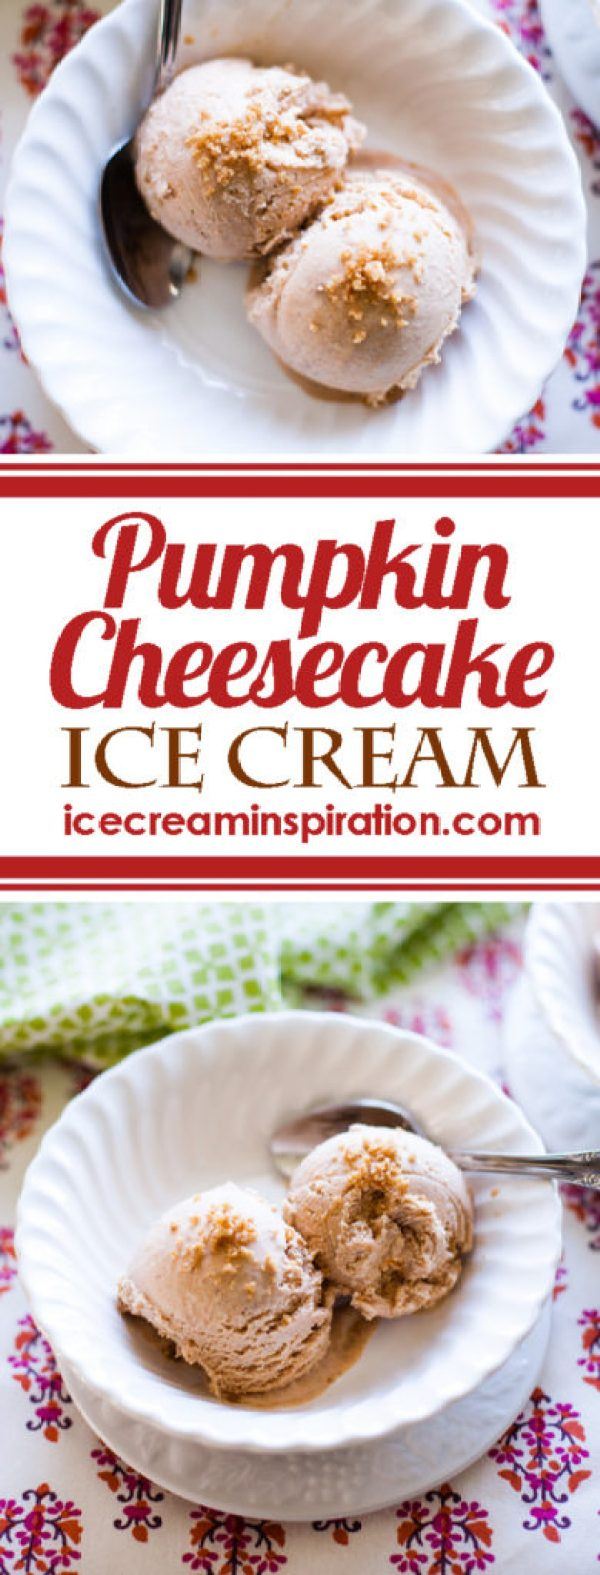 This Pumpkin Cheesecake Ice Cream is a perfect ice cream for fall and would be an amazing dessert for Thanksgiving! See what the secret ingredient is!